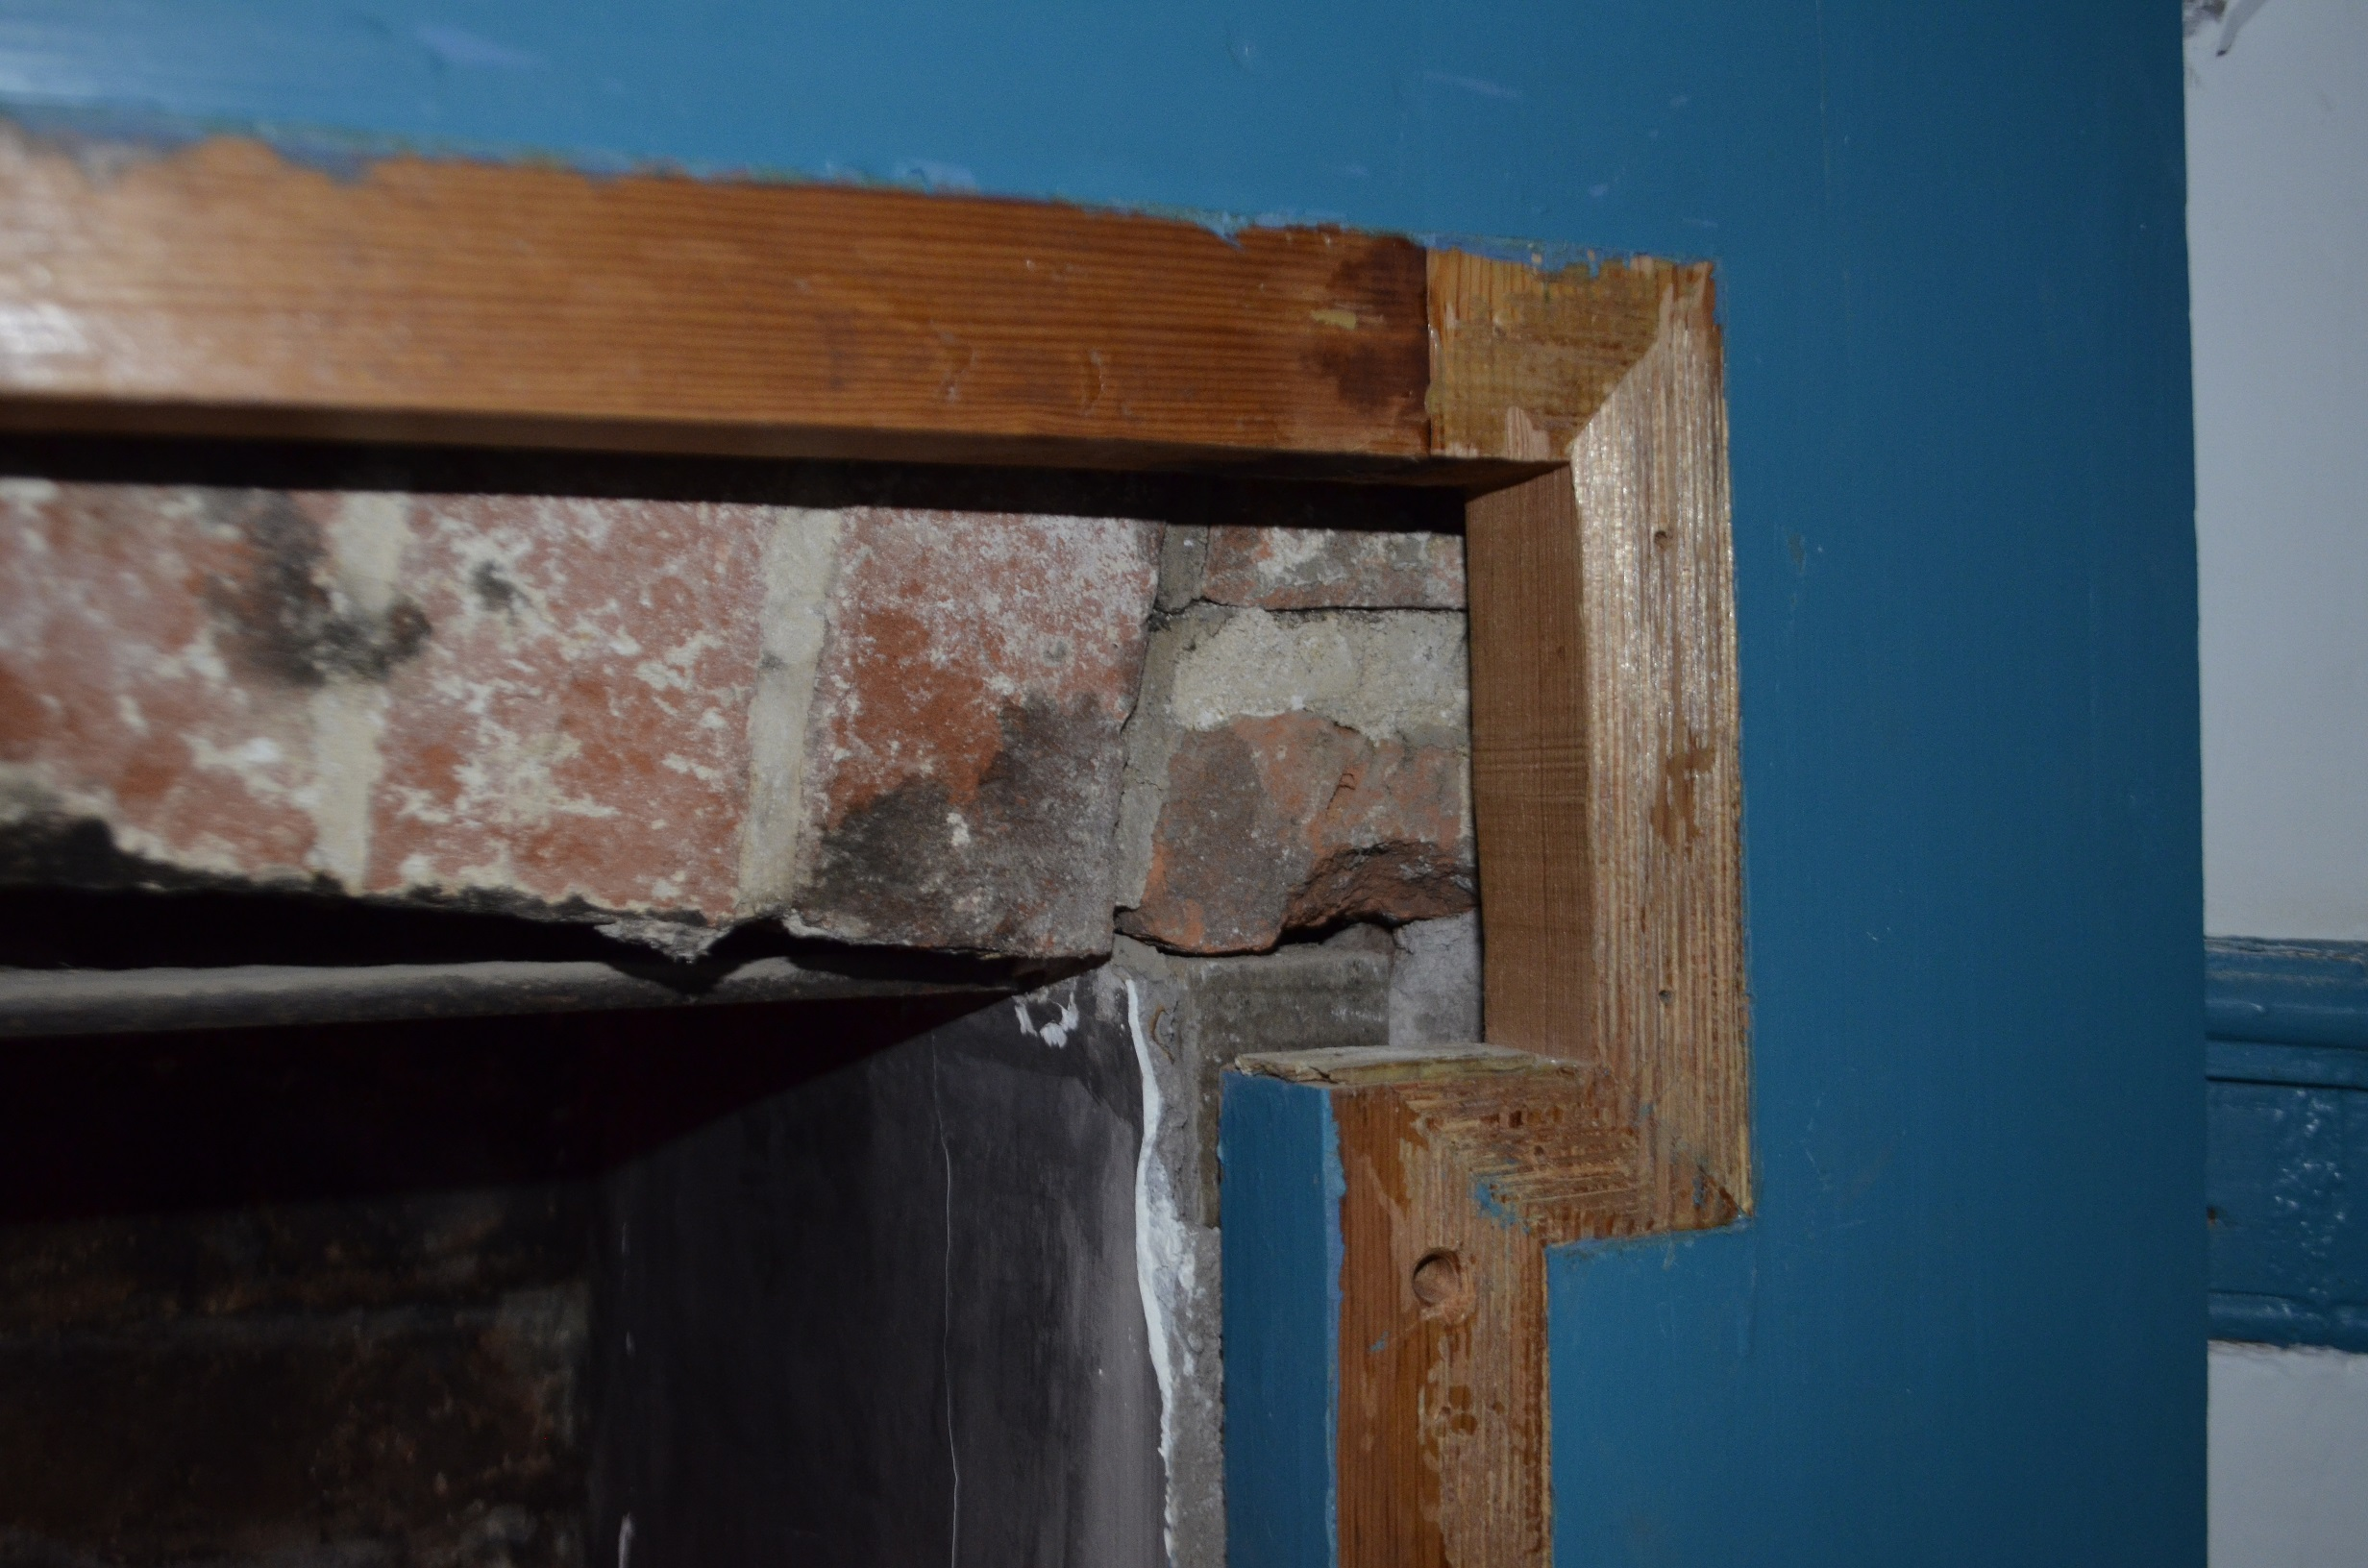 Corner of mantel with decorative lintel and applied trim removed.